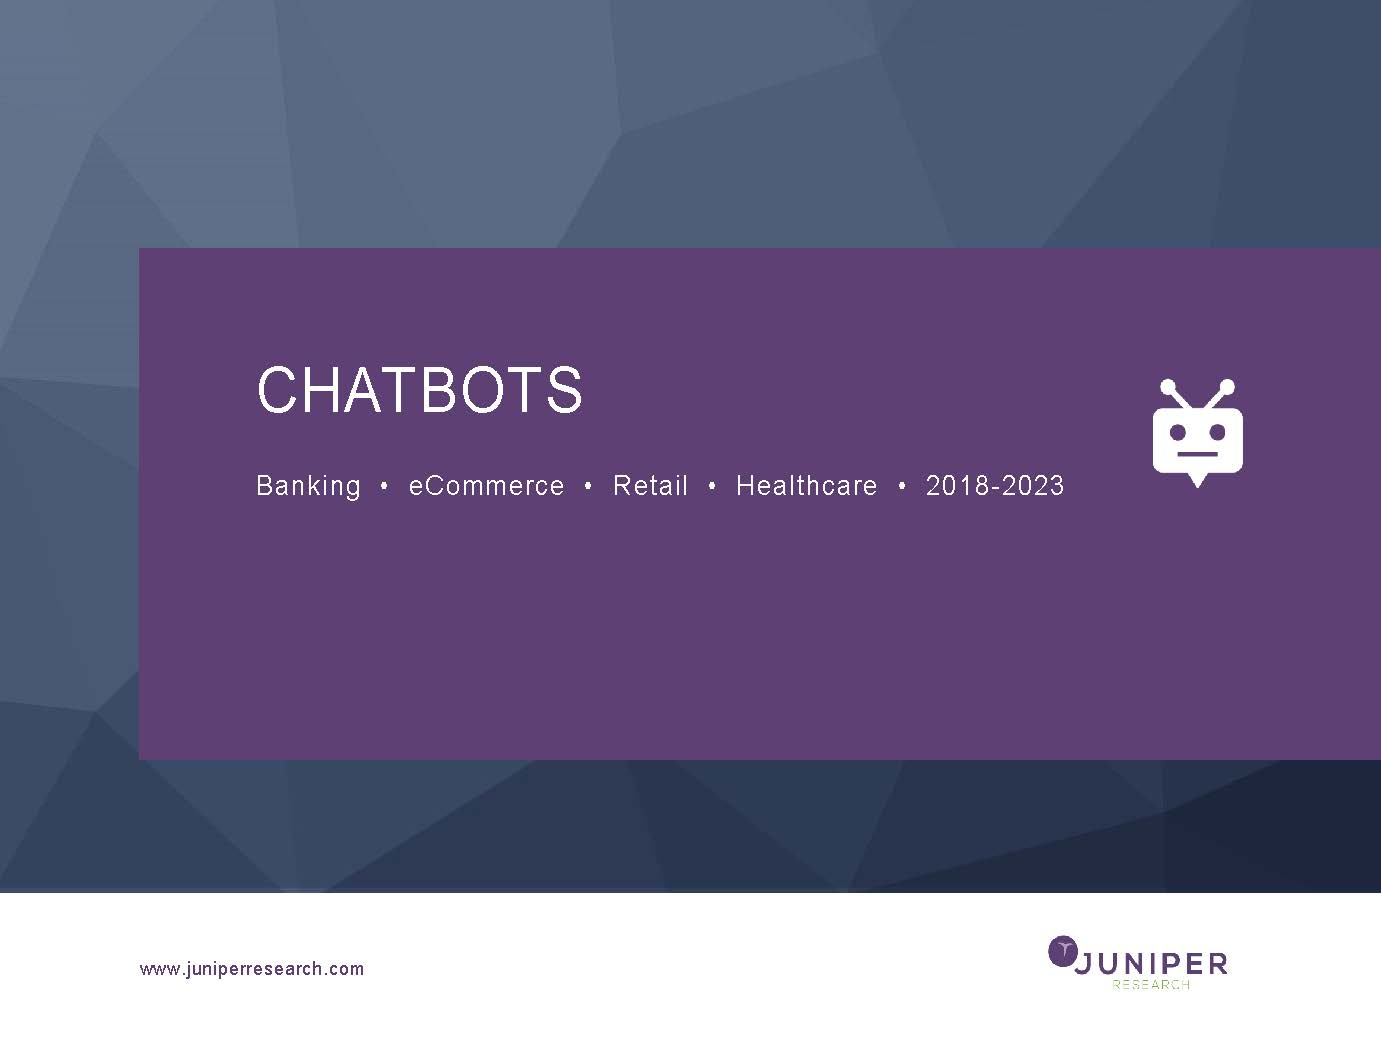 Chatbots: Banking, eCommerce, Retail & Healthcare 2018-2023